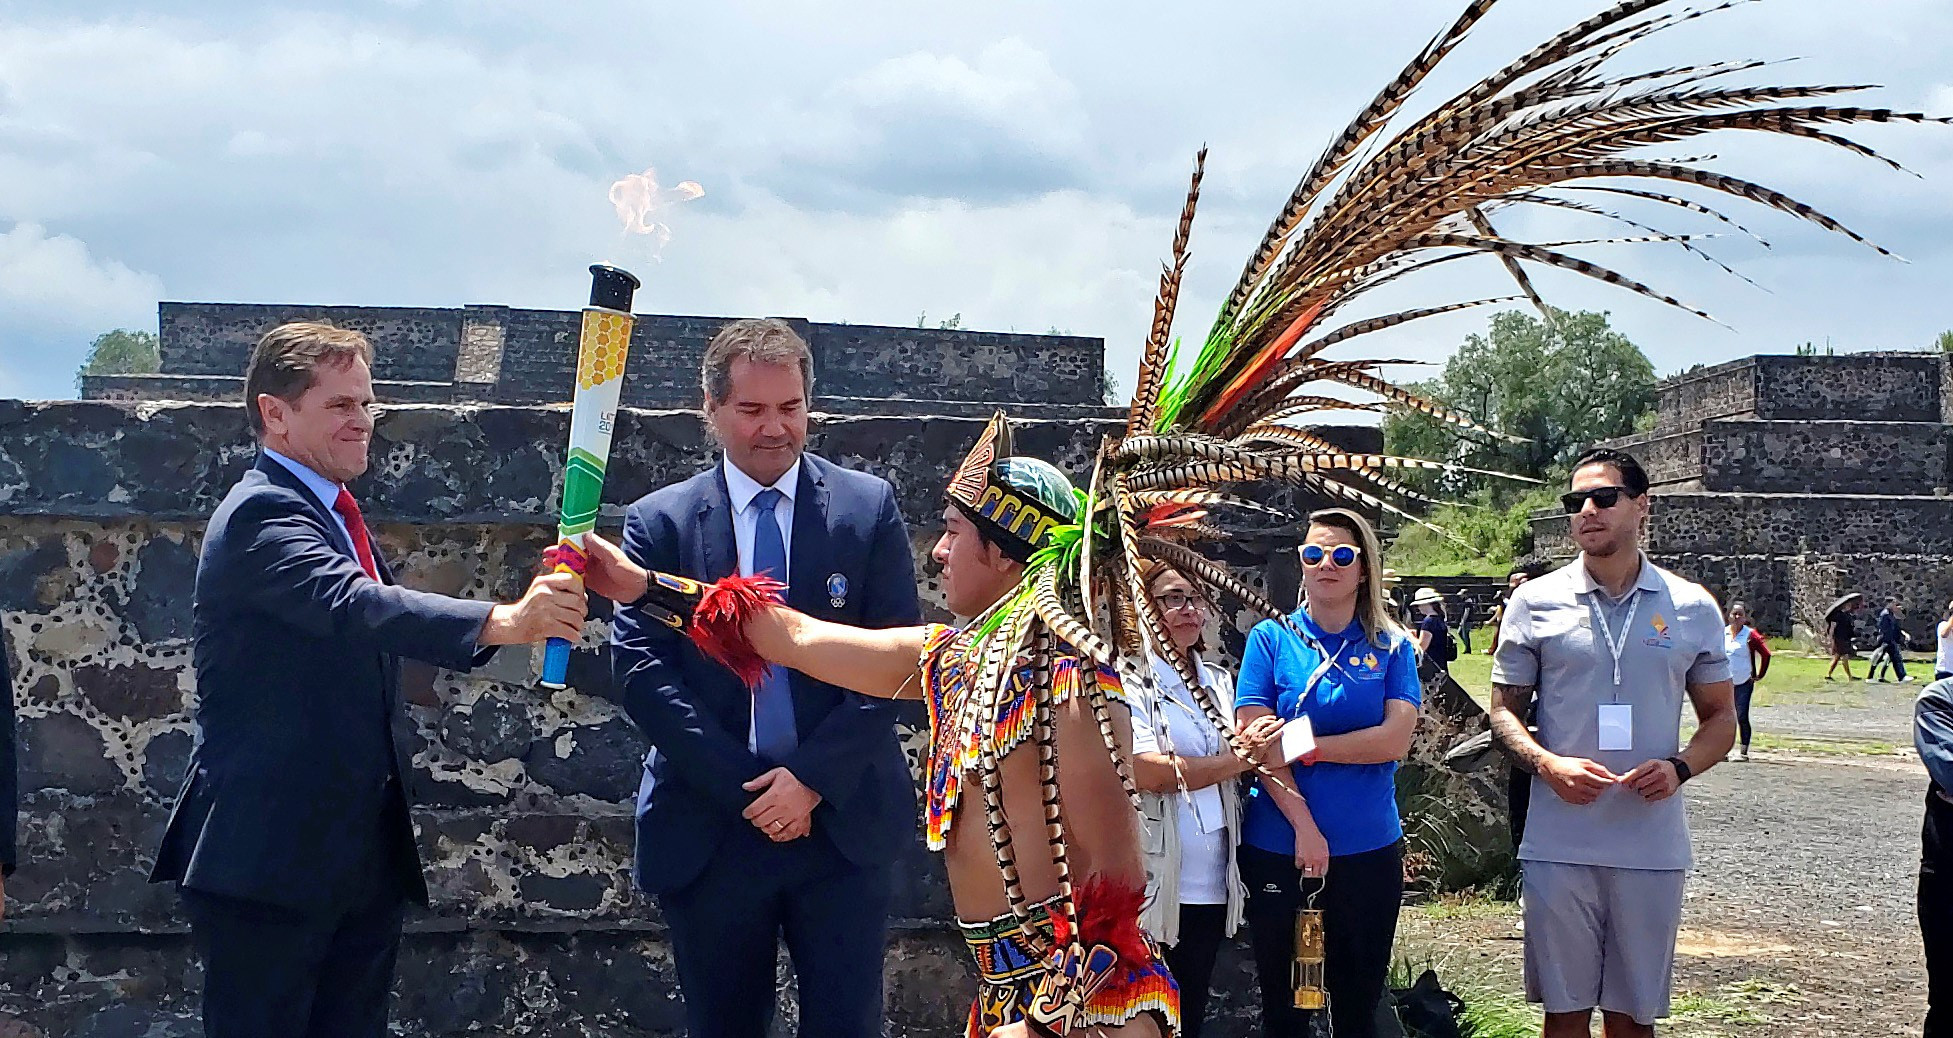 Lima 2019 has lit the Pan American Games Torch at the Plaza of the Pyramid of the Moon ©Lima 2019